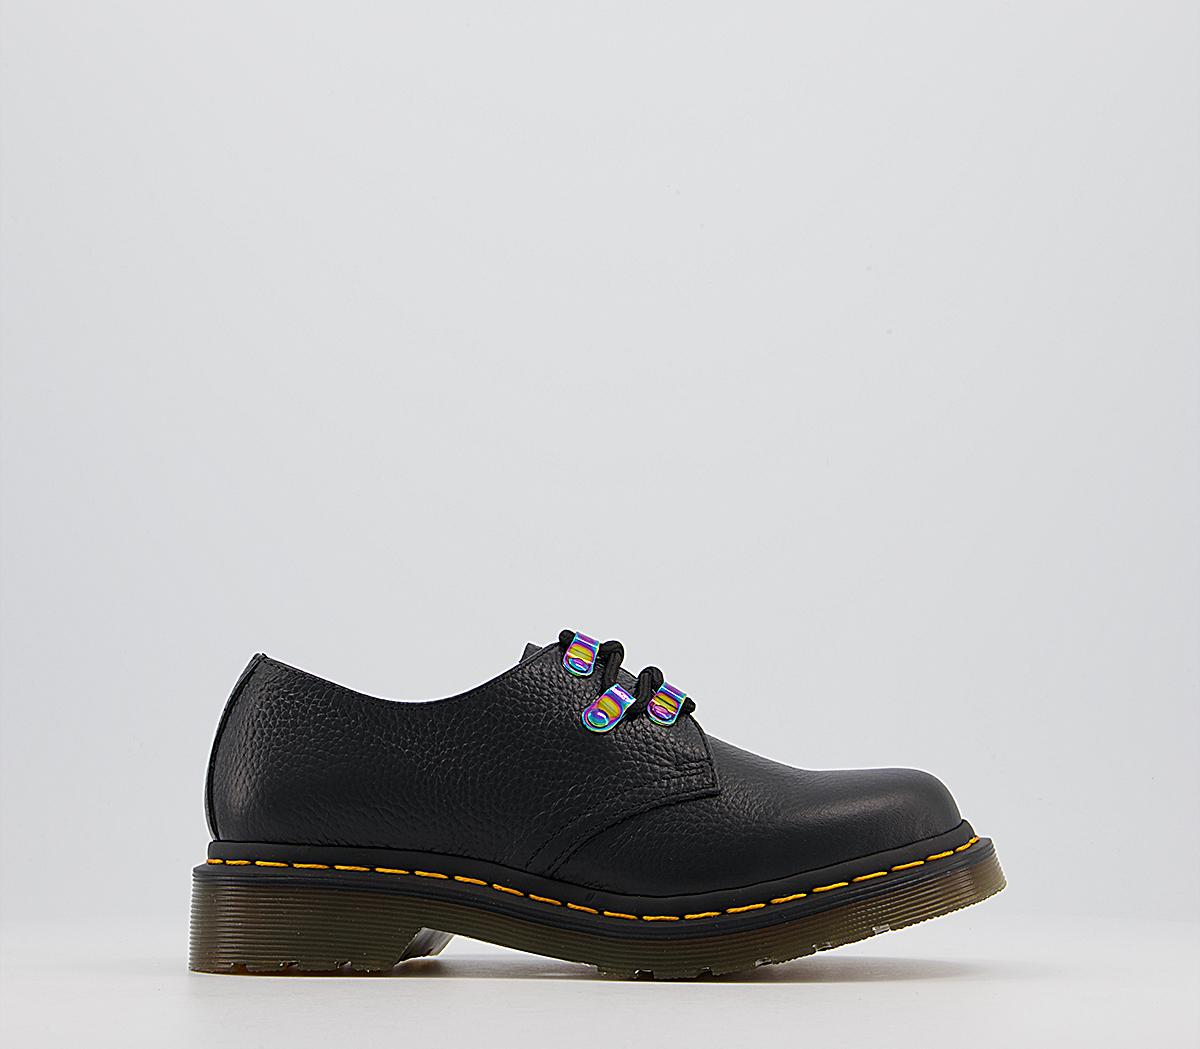 1461 Irridescent Hardware Shoes